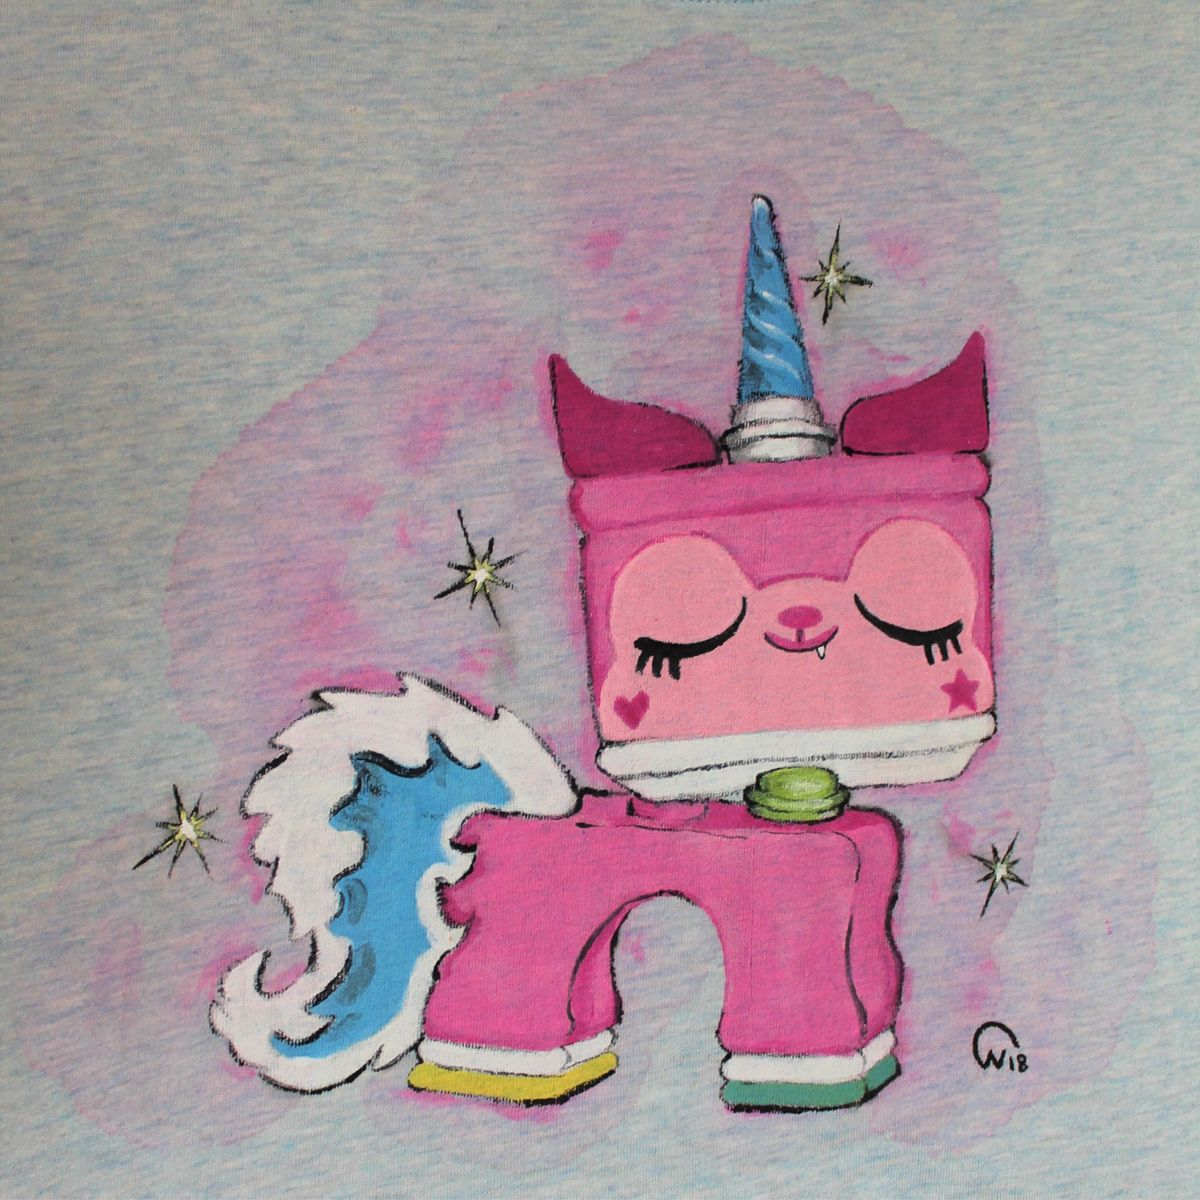 Prinsessan Unikitty, kawaii